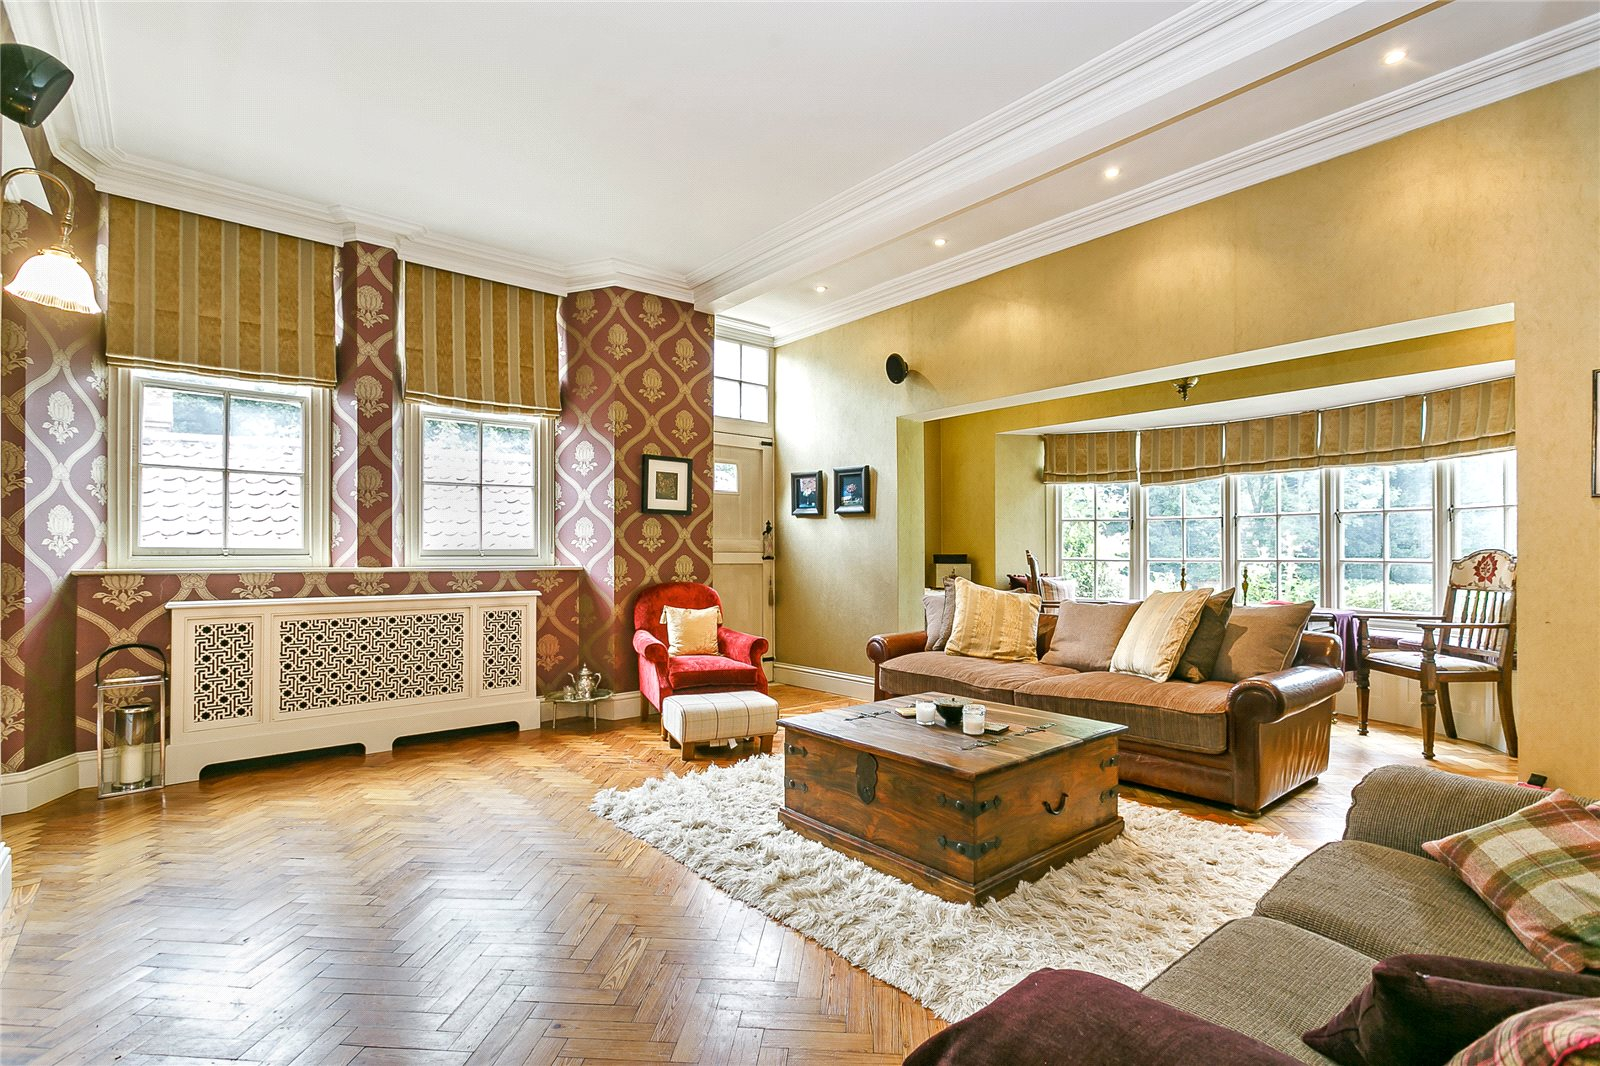 Additional photo for property listing at Croydon Road, Bromley, BR2 Angleterre